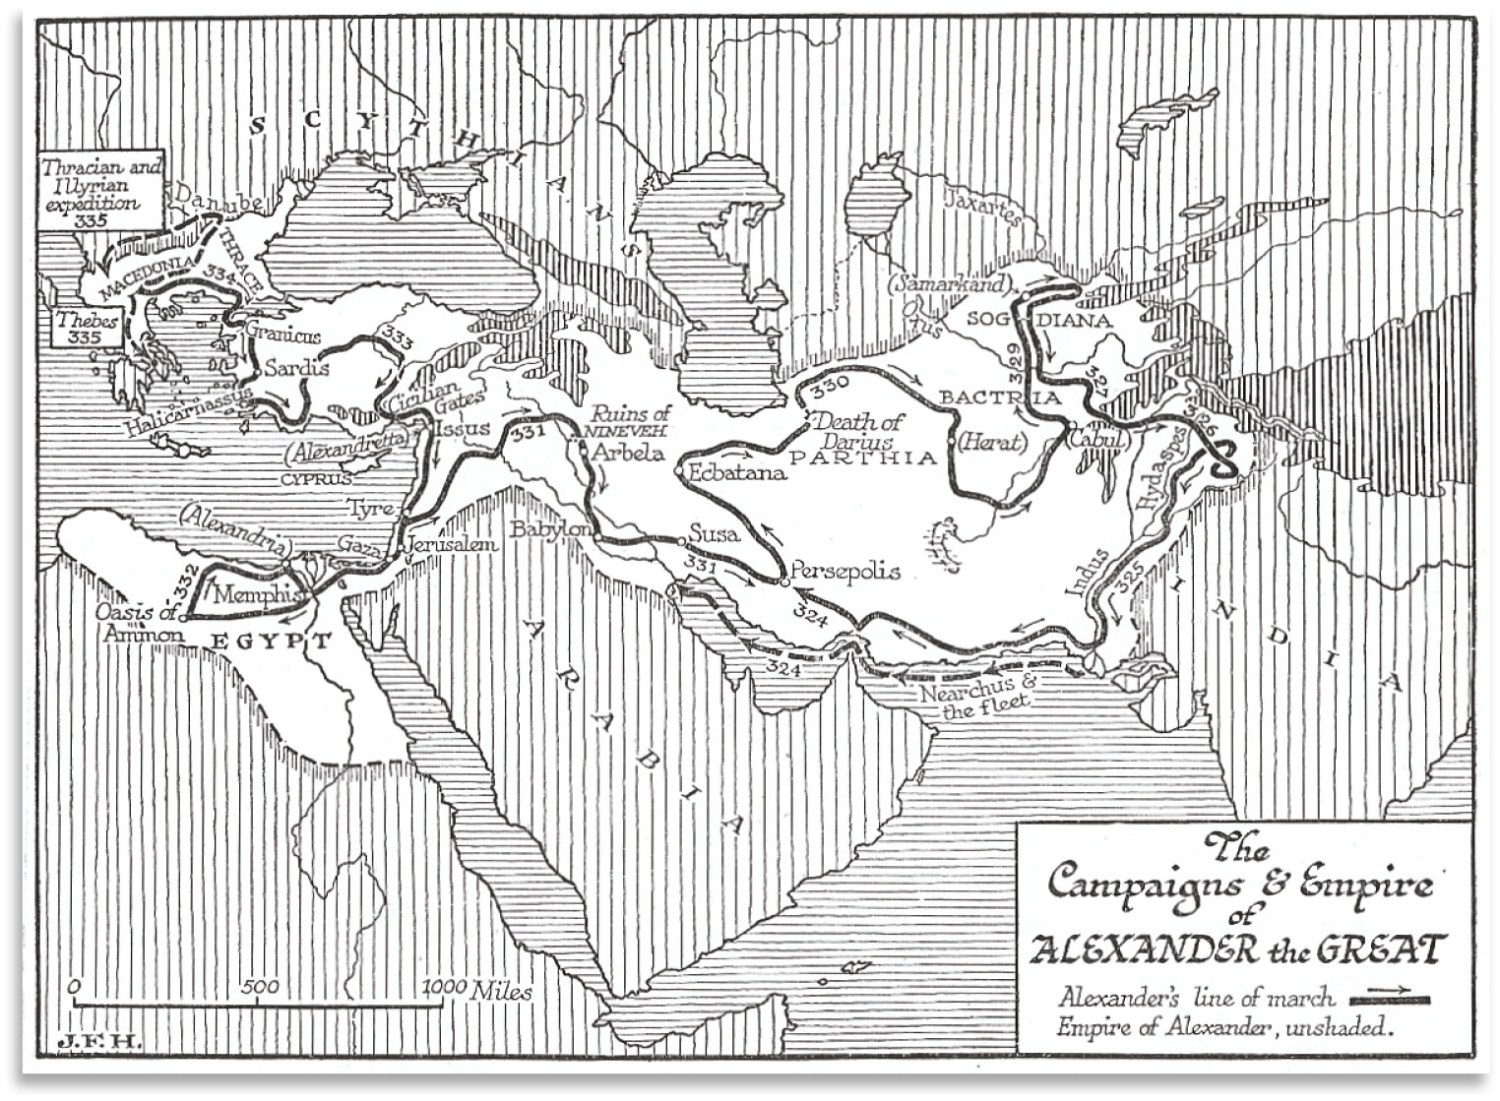 above Map showing the campaigns of Alexander.